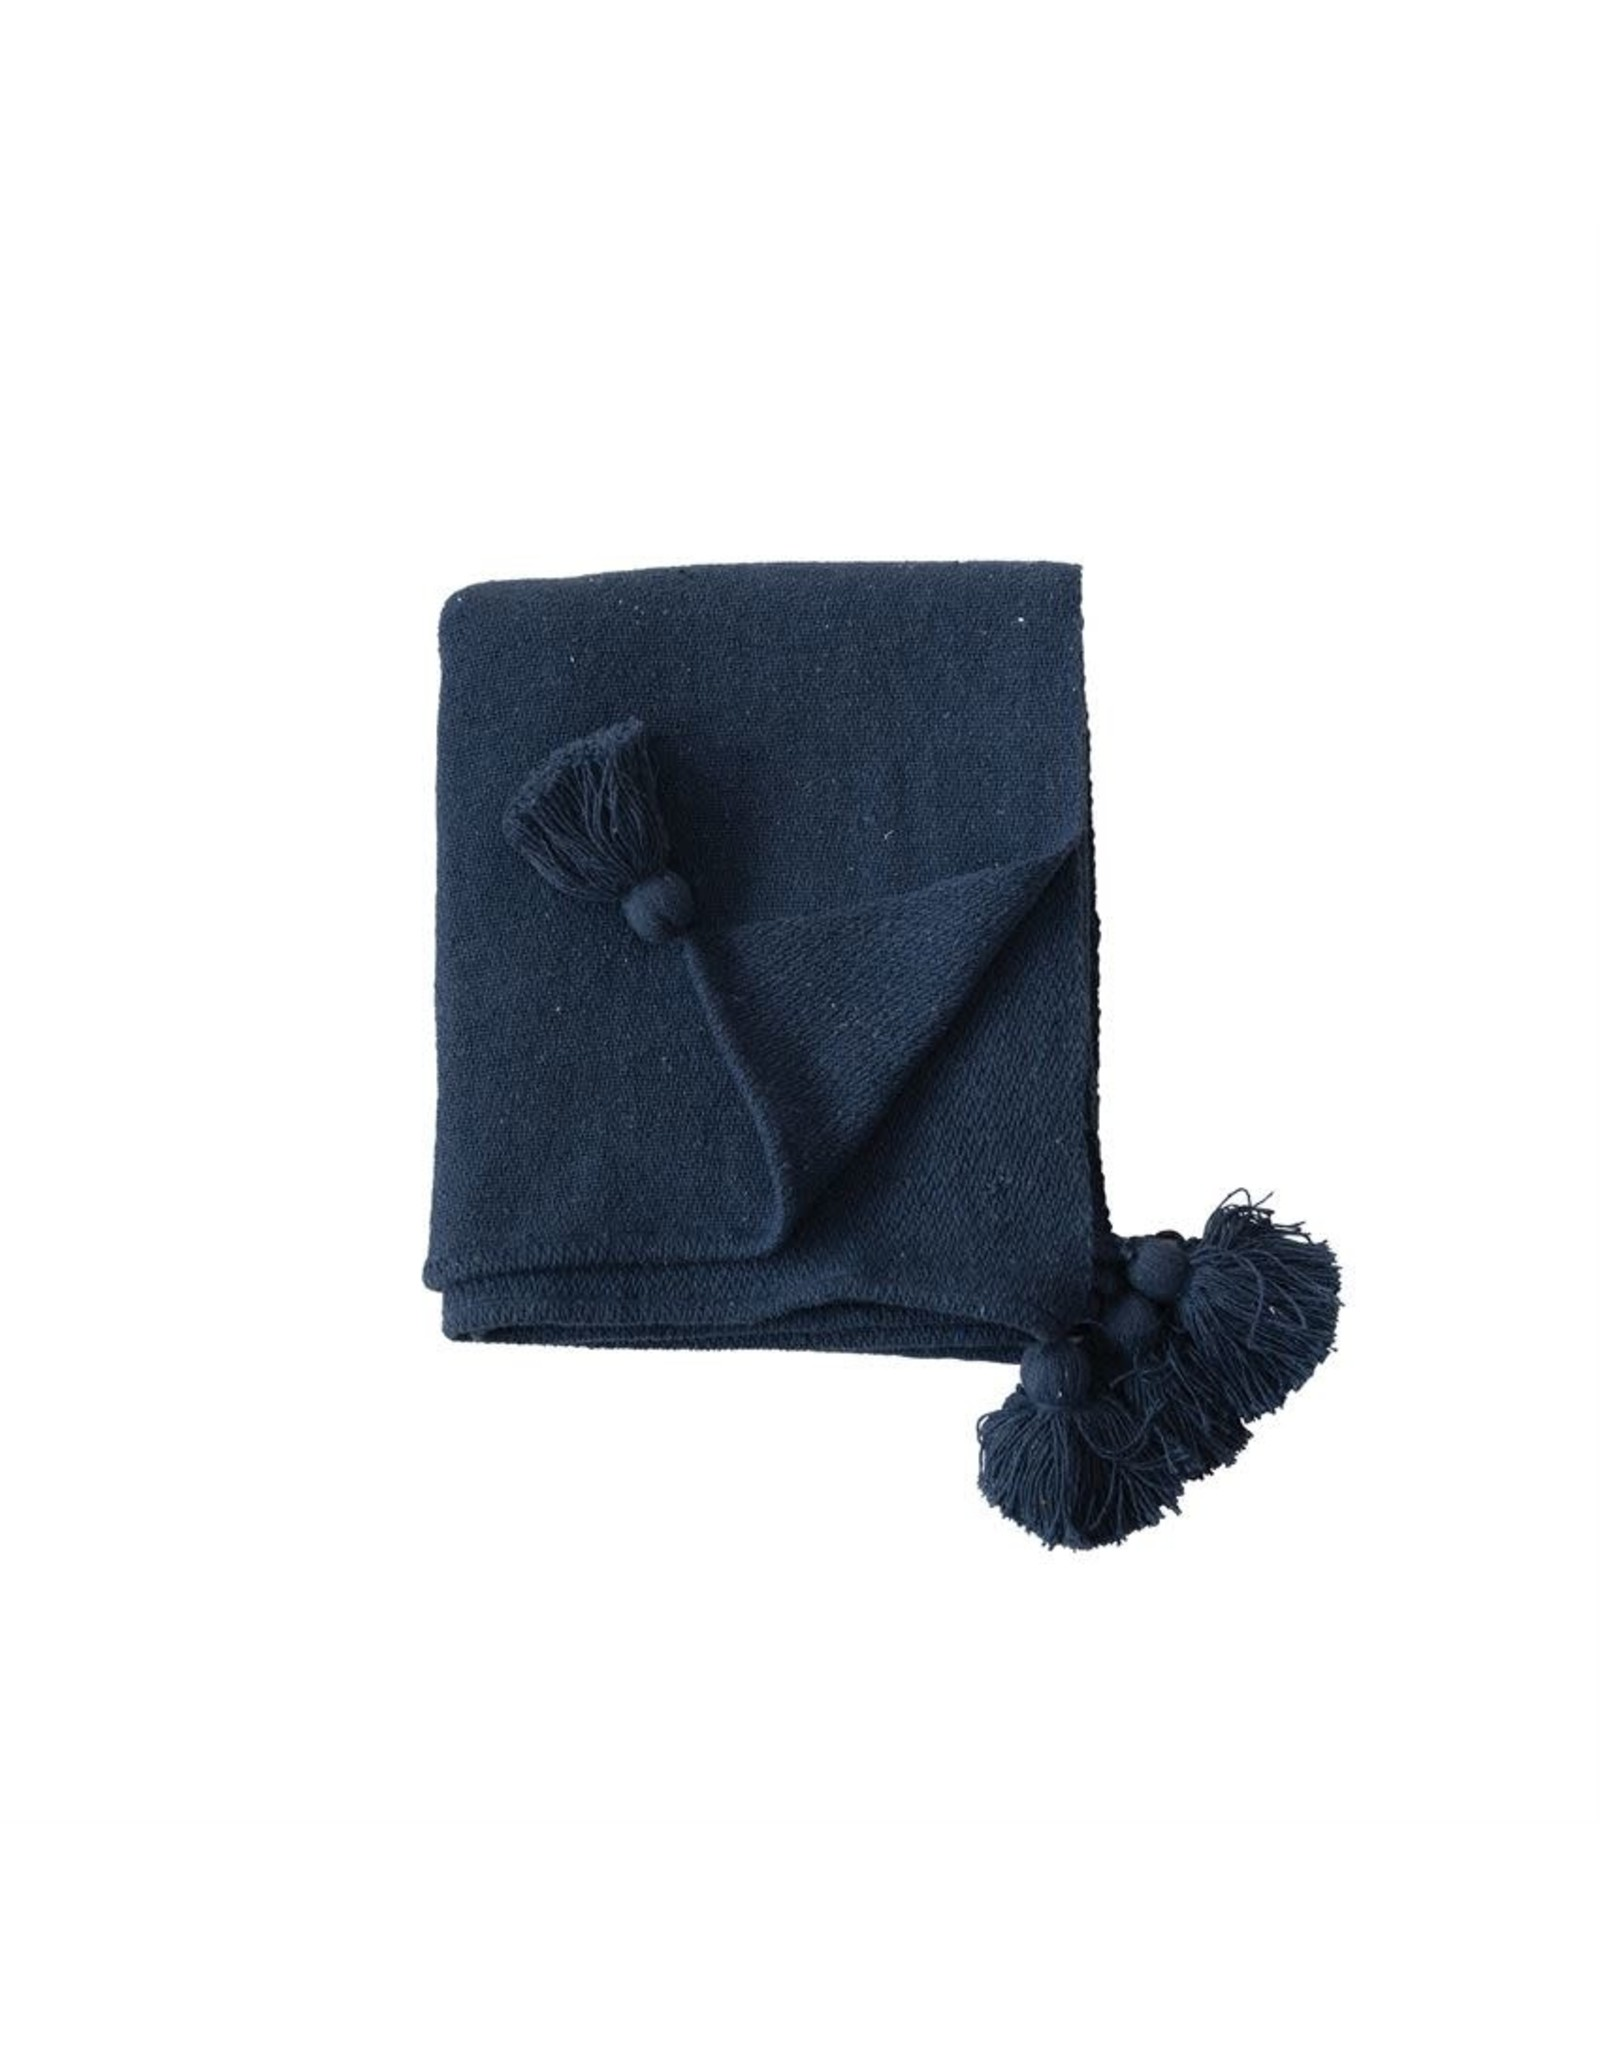 """The Florist & The Merchant 60"""" x 50"""" Recycled Cotton Throw - Navy"""